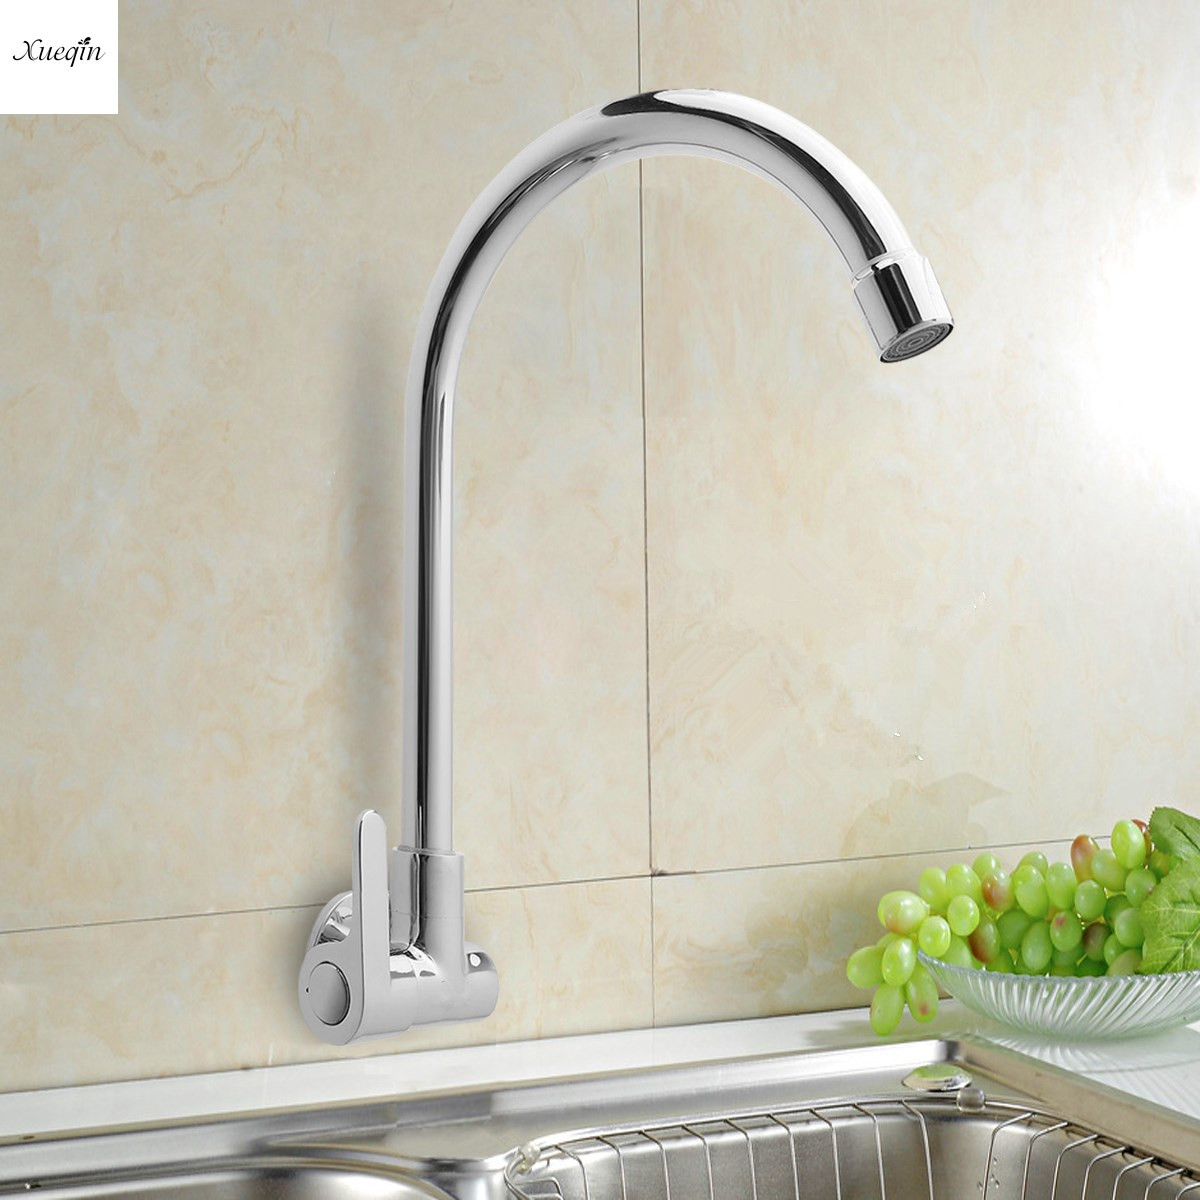 Bathroom Single Handle Single Cold Tap Kitchen Water Faucet 360Rotatable Wall Mounted Basin Sink Faucet SpoutBathroom Single Handle Single Cold Tap Kitchen Water Faucet 360Rotatable Wall Mounted Basin Sink Faucet Spout